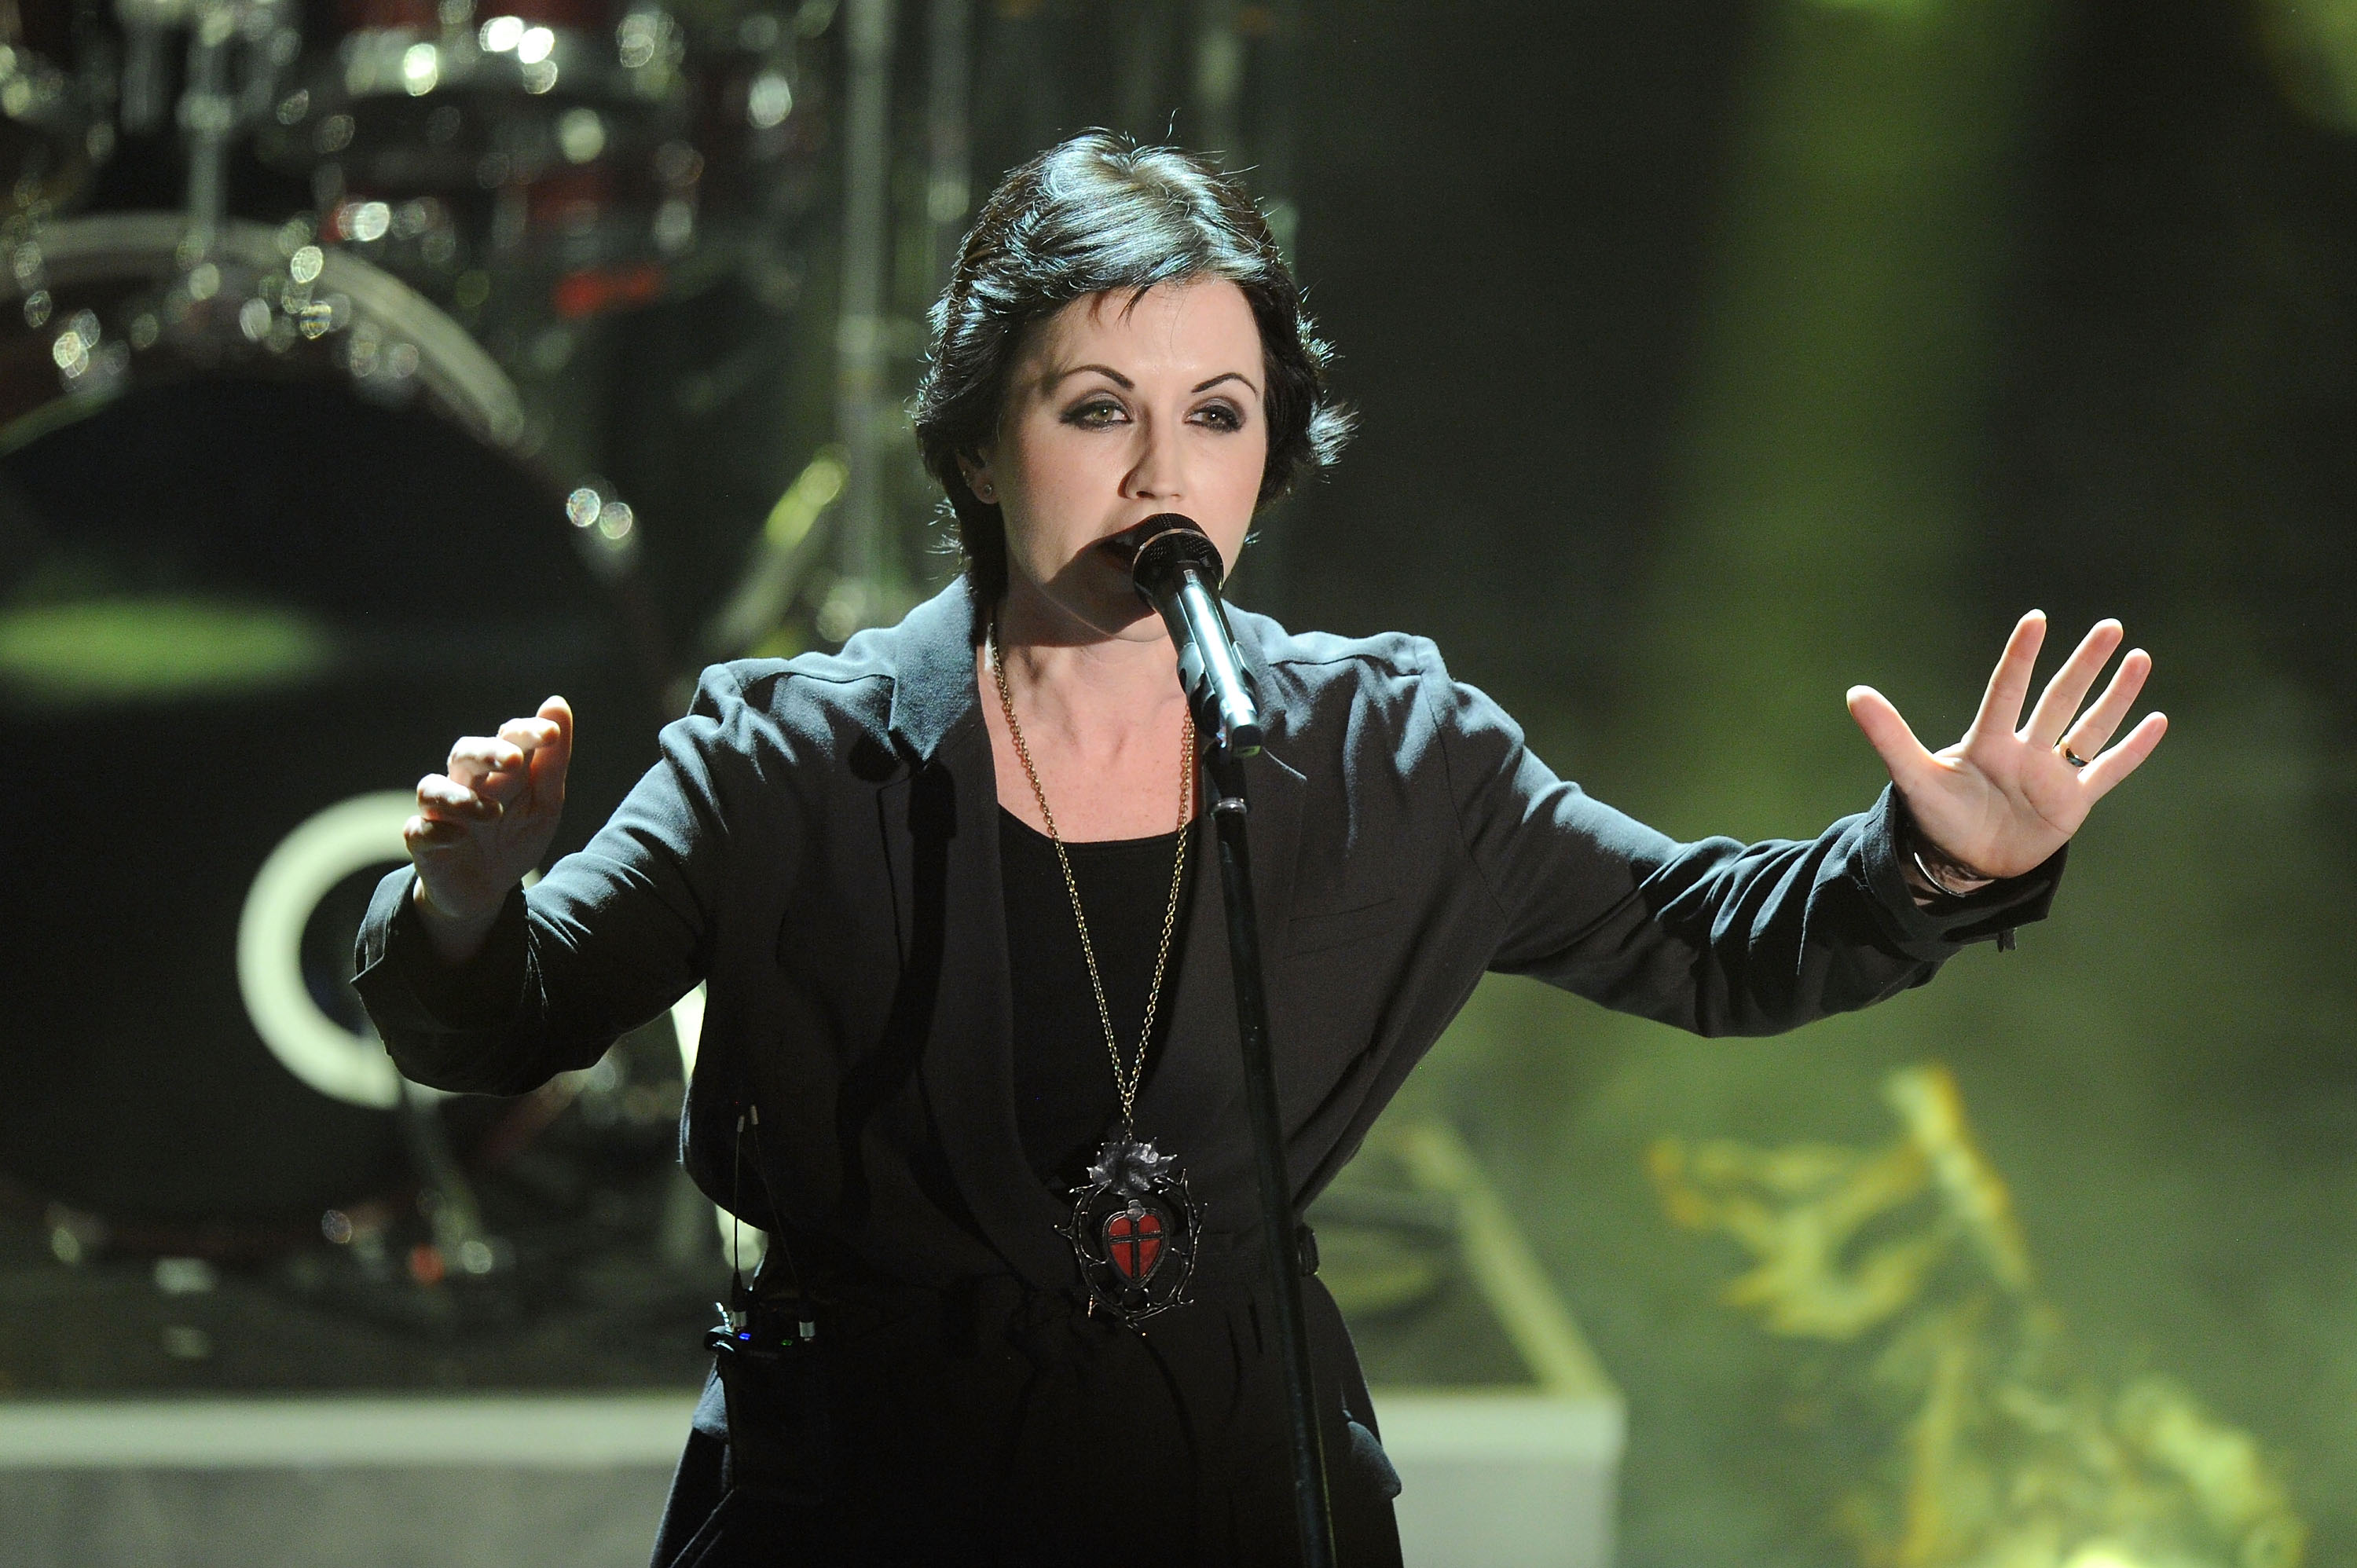 Dolores O'Riordan Passes Away At 46